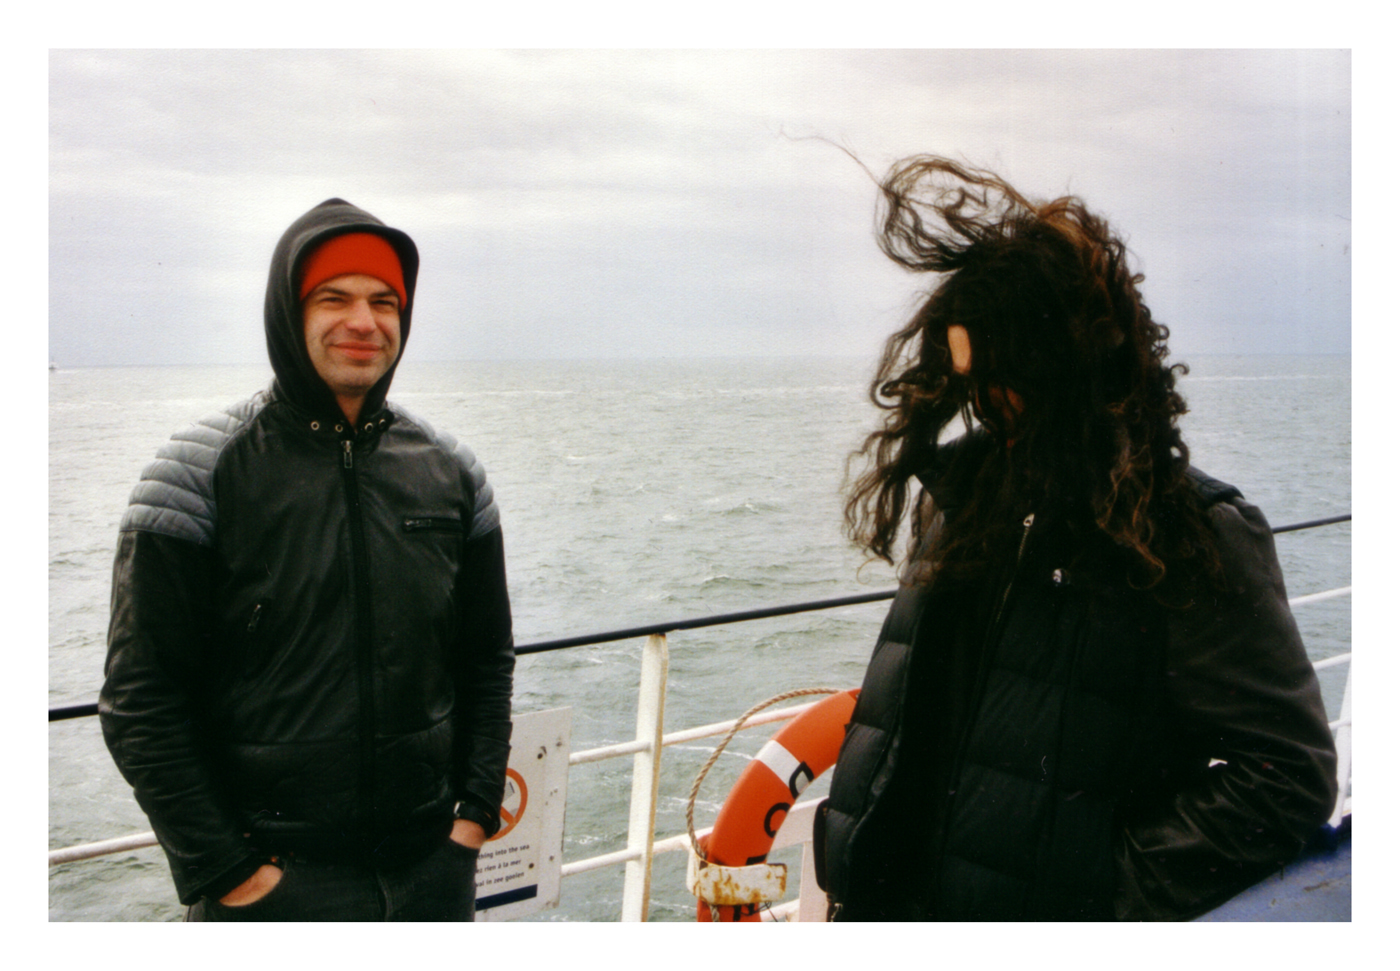 Joe Preston & SOMA on a Danish ferry 2003